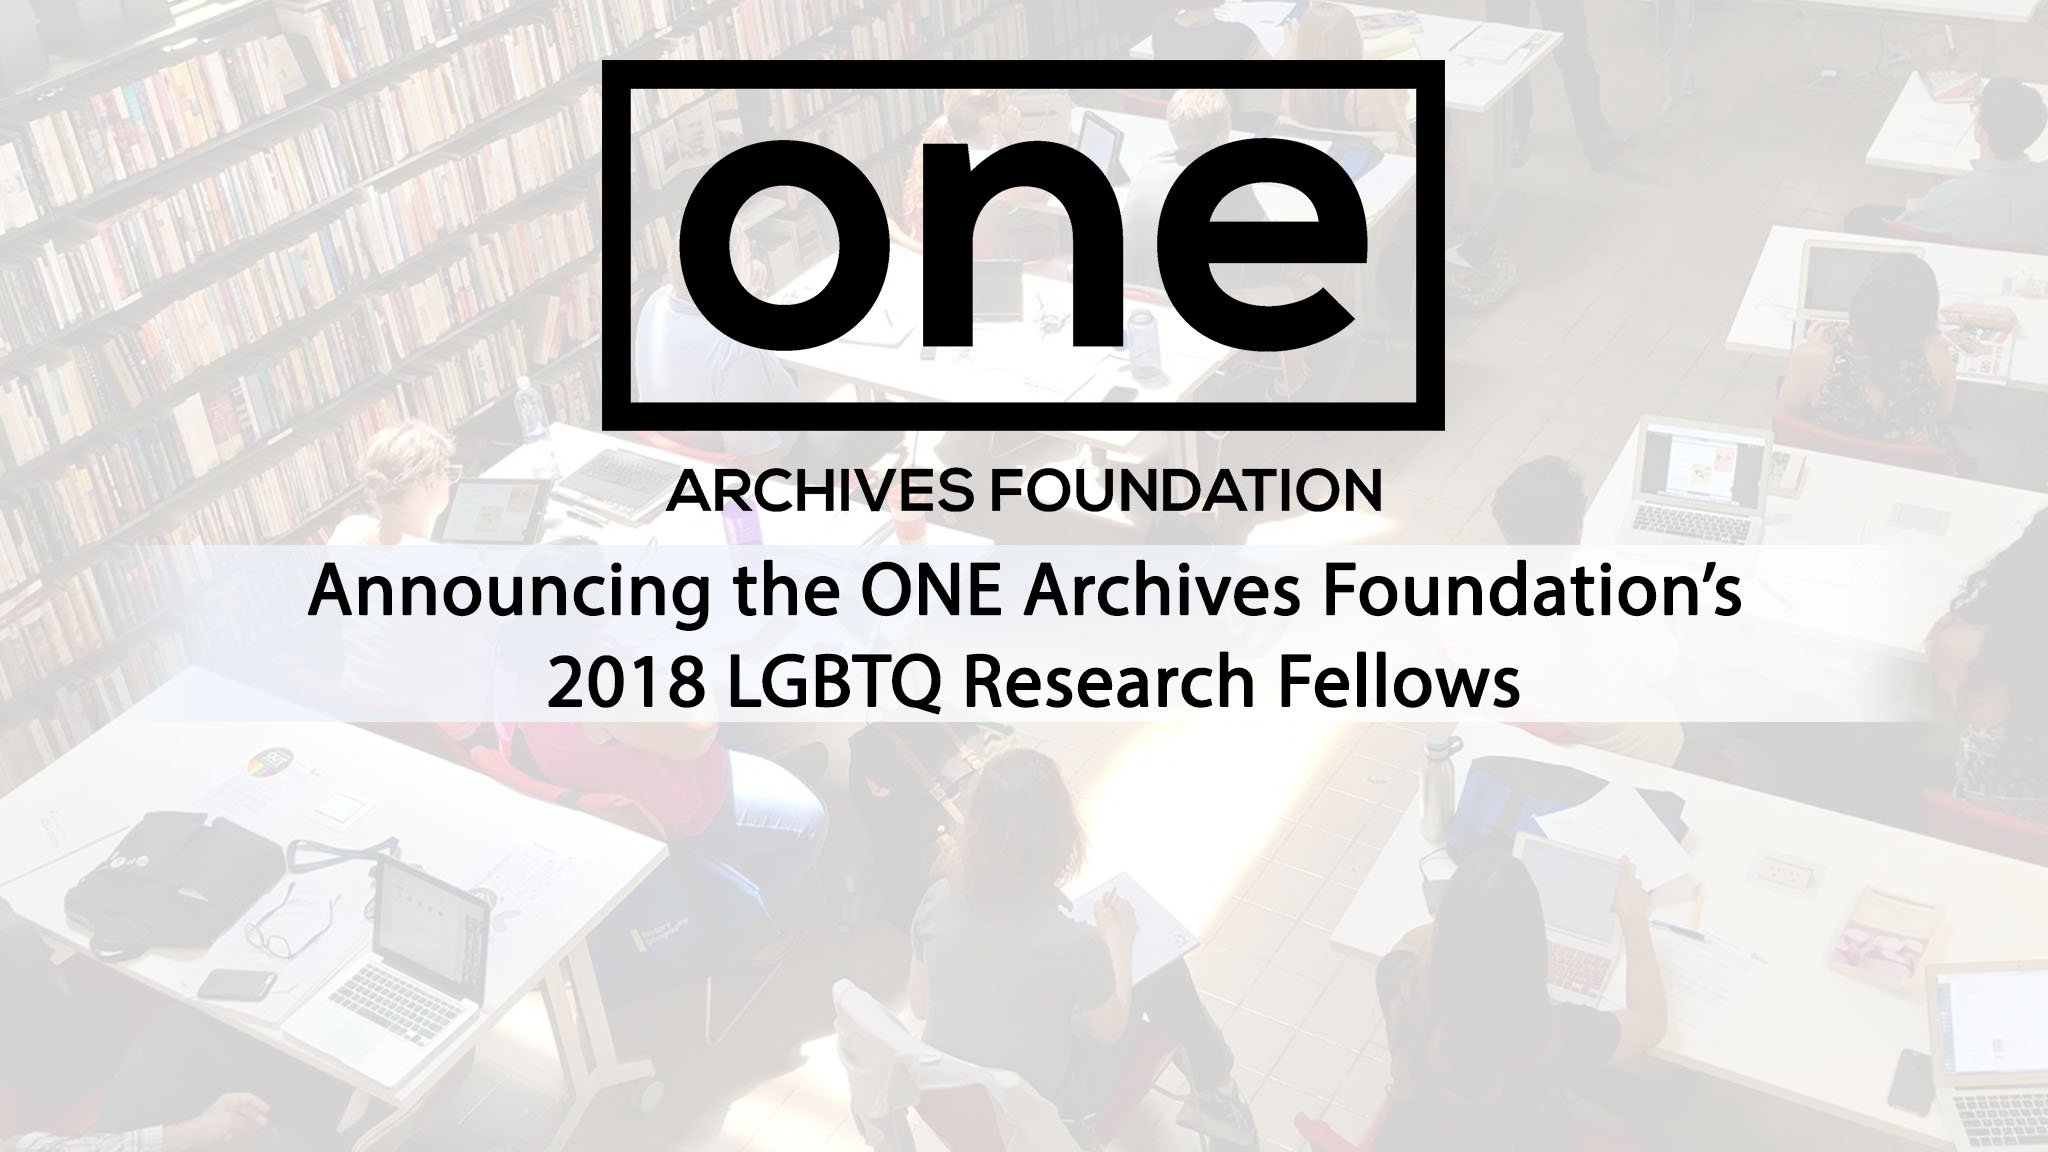 Meet the New LGBTQ Research Fellows